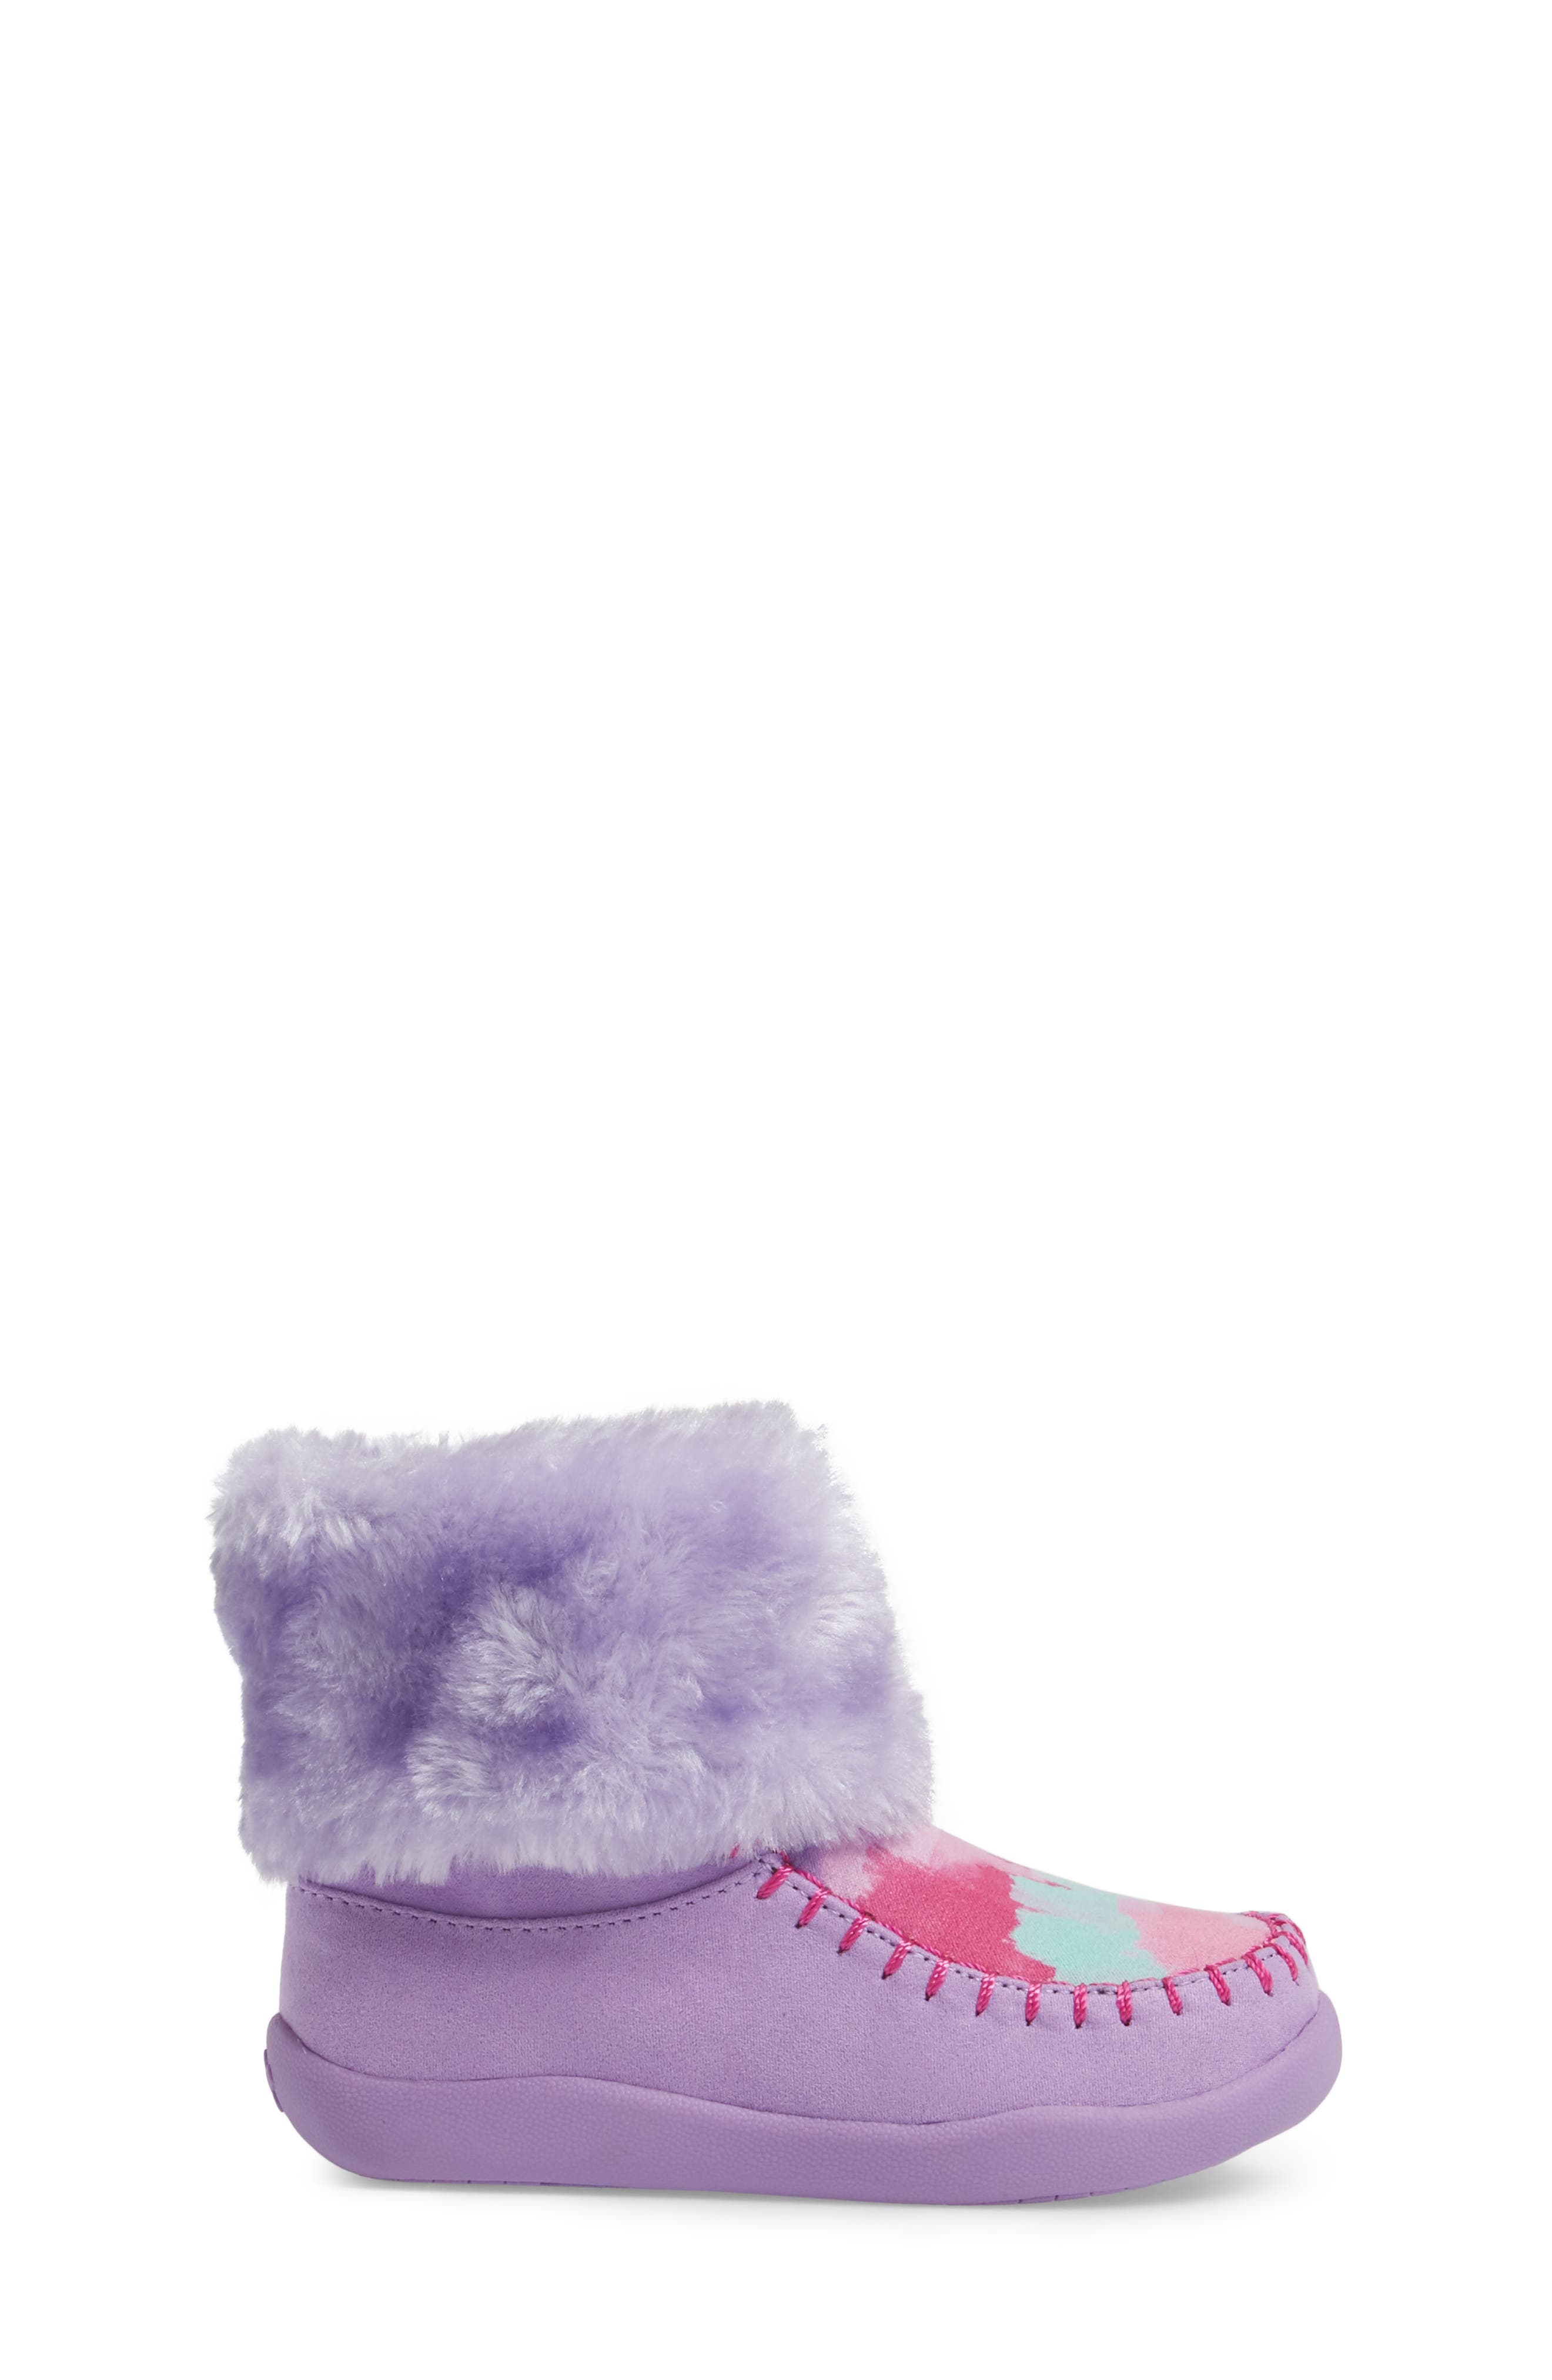 Comfy Faux Fur Patterned Boot,                             Alternate thumbnail 3, color,                             Brush